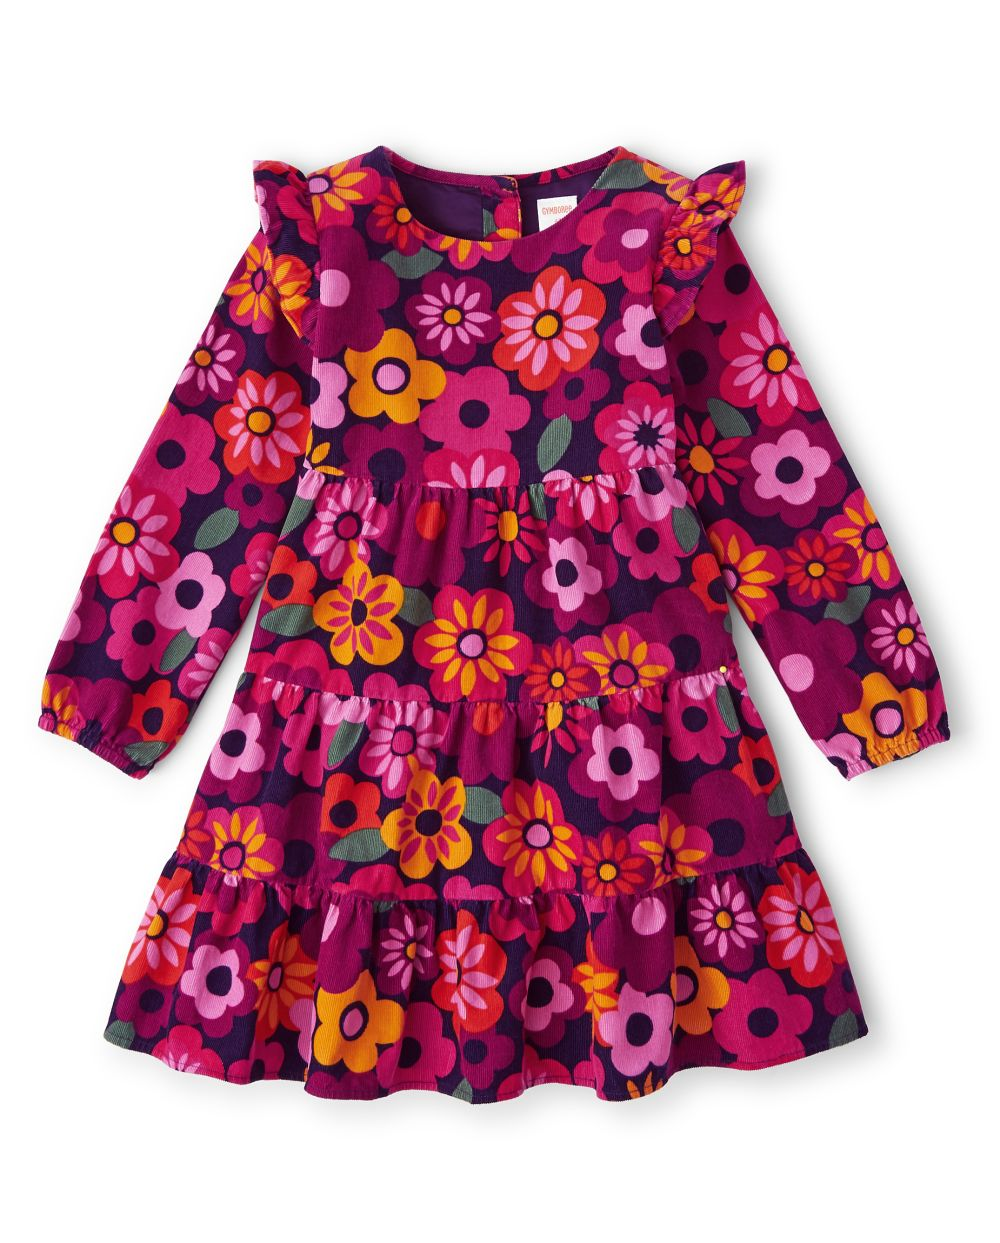 Girls Floral Corduroy Tiered Dress - Berry Cute